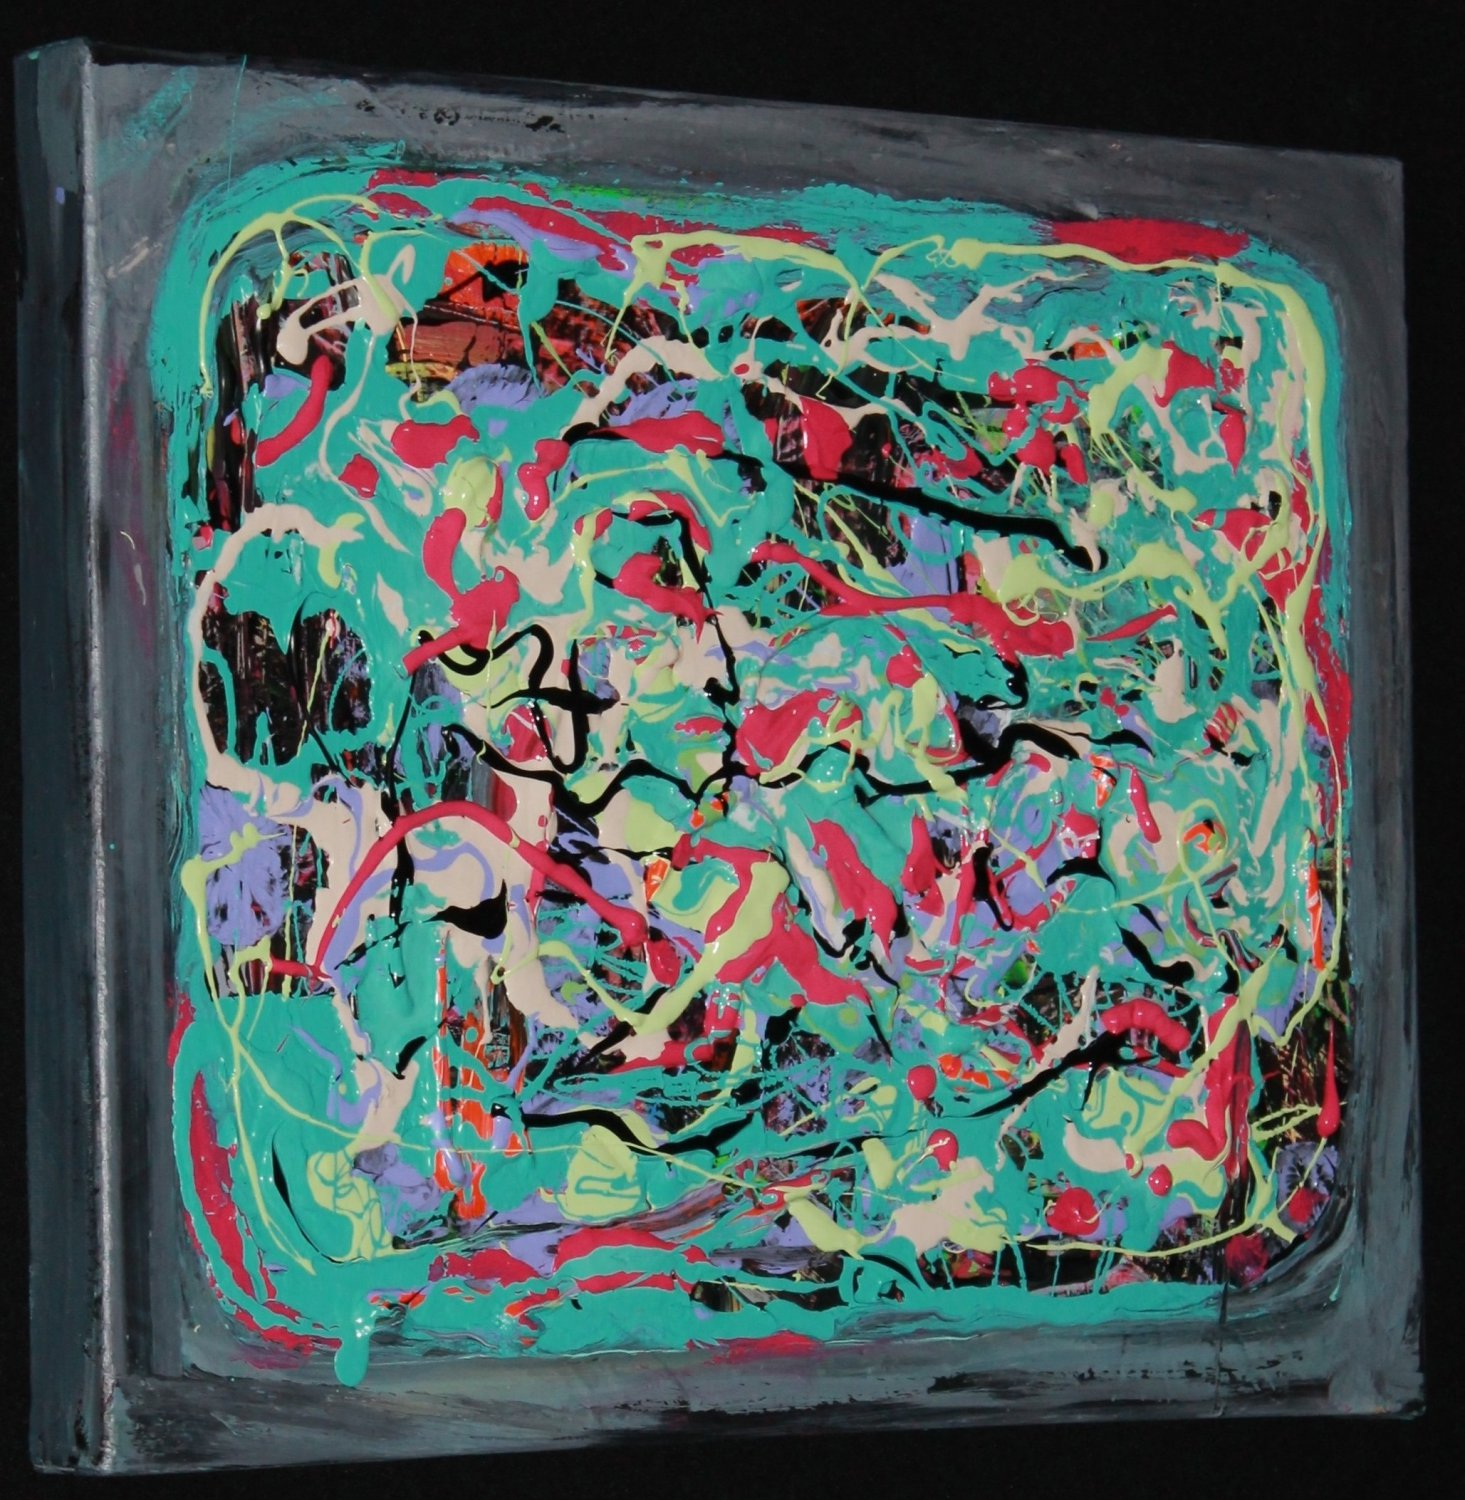 Abstract Art Painting - acrylic paint on canvas teal